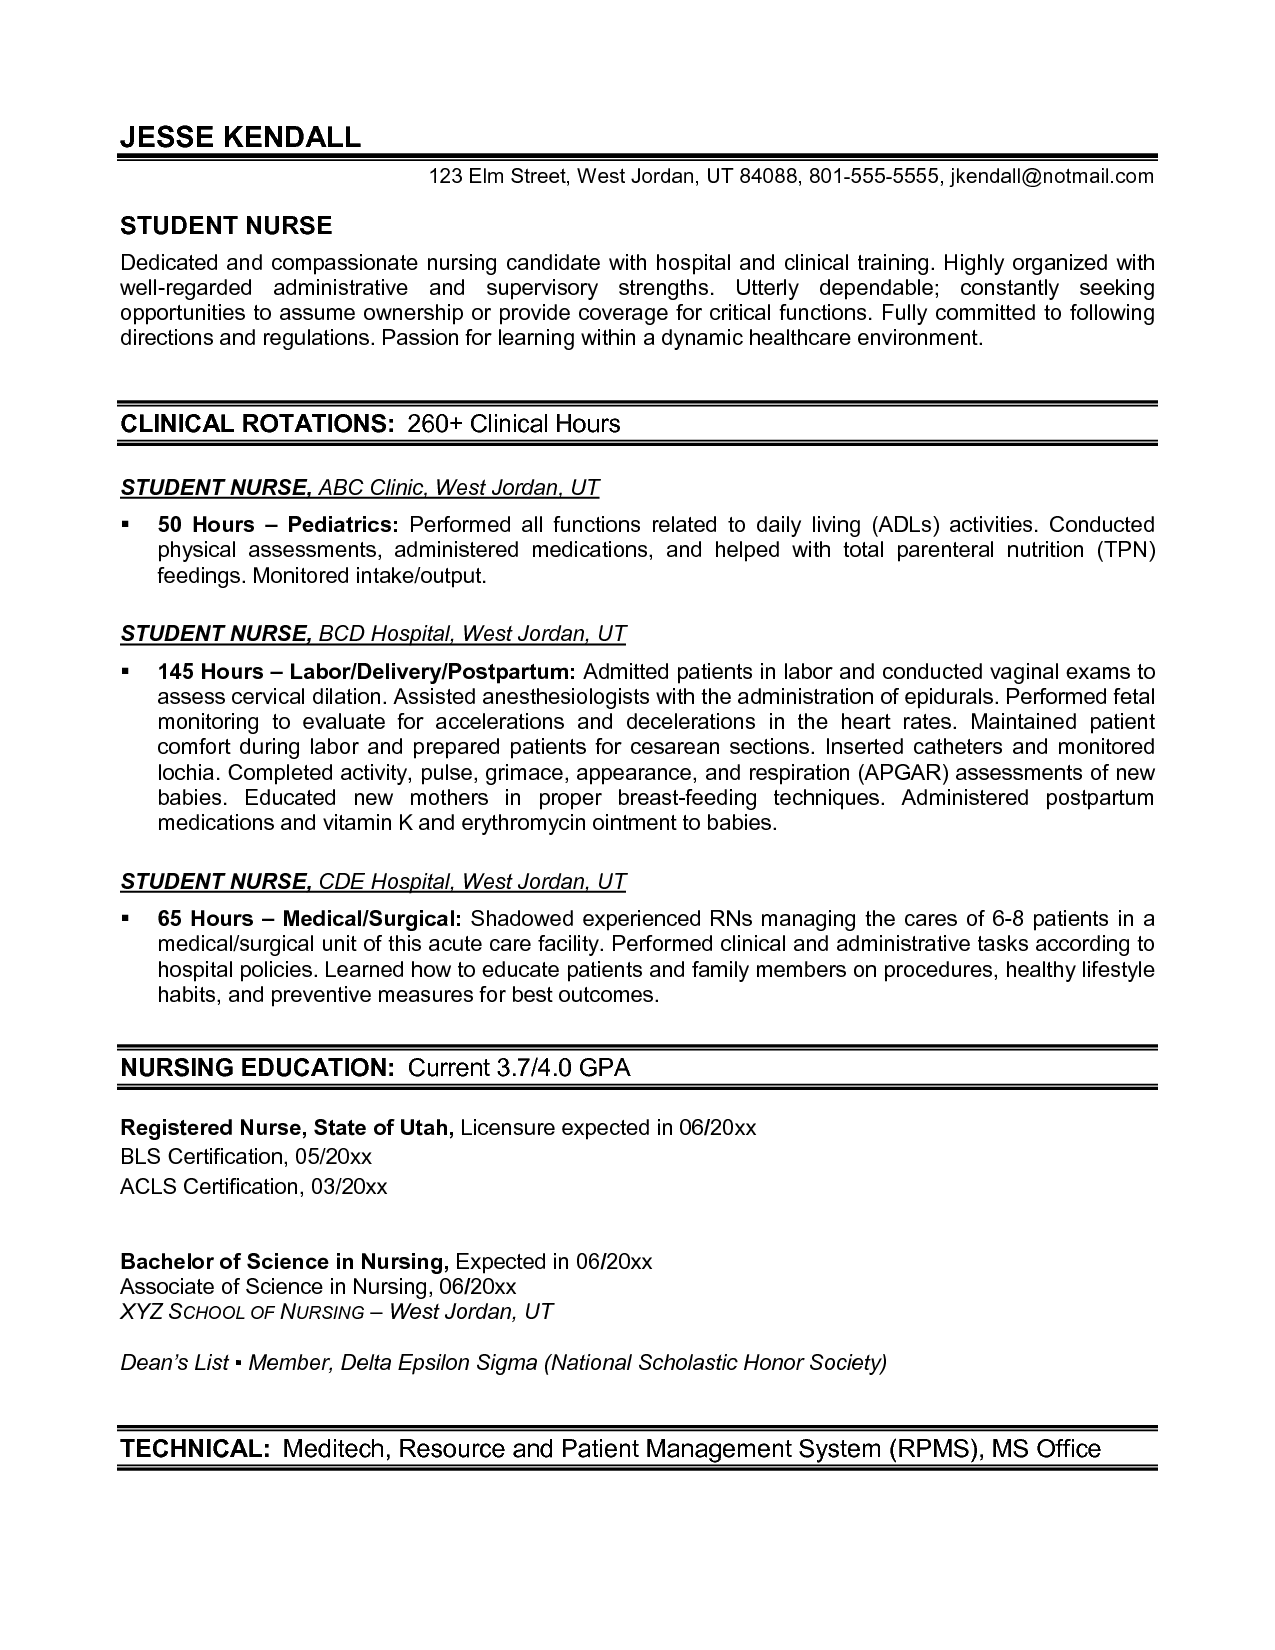 Resume Education Example Gorgeous Resume Template Nursing  Nursing  Pinterest  Nursing Resume Review